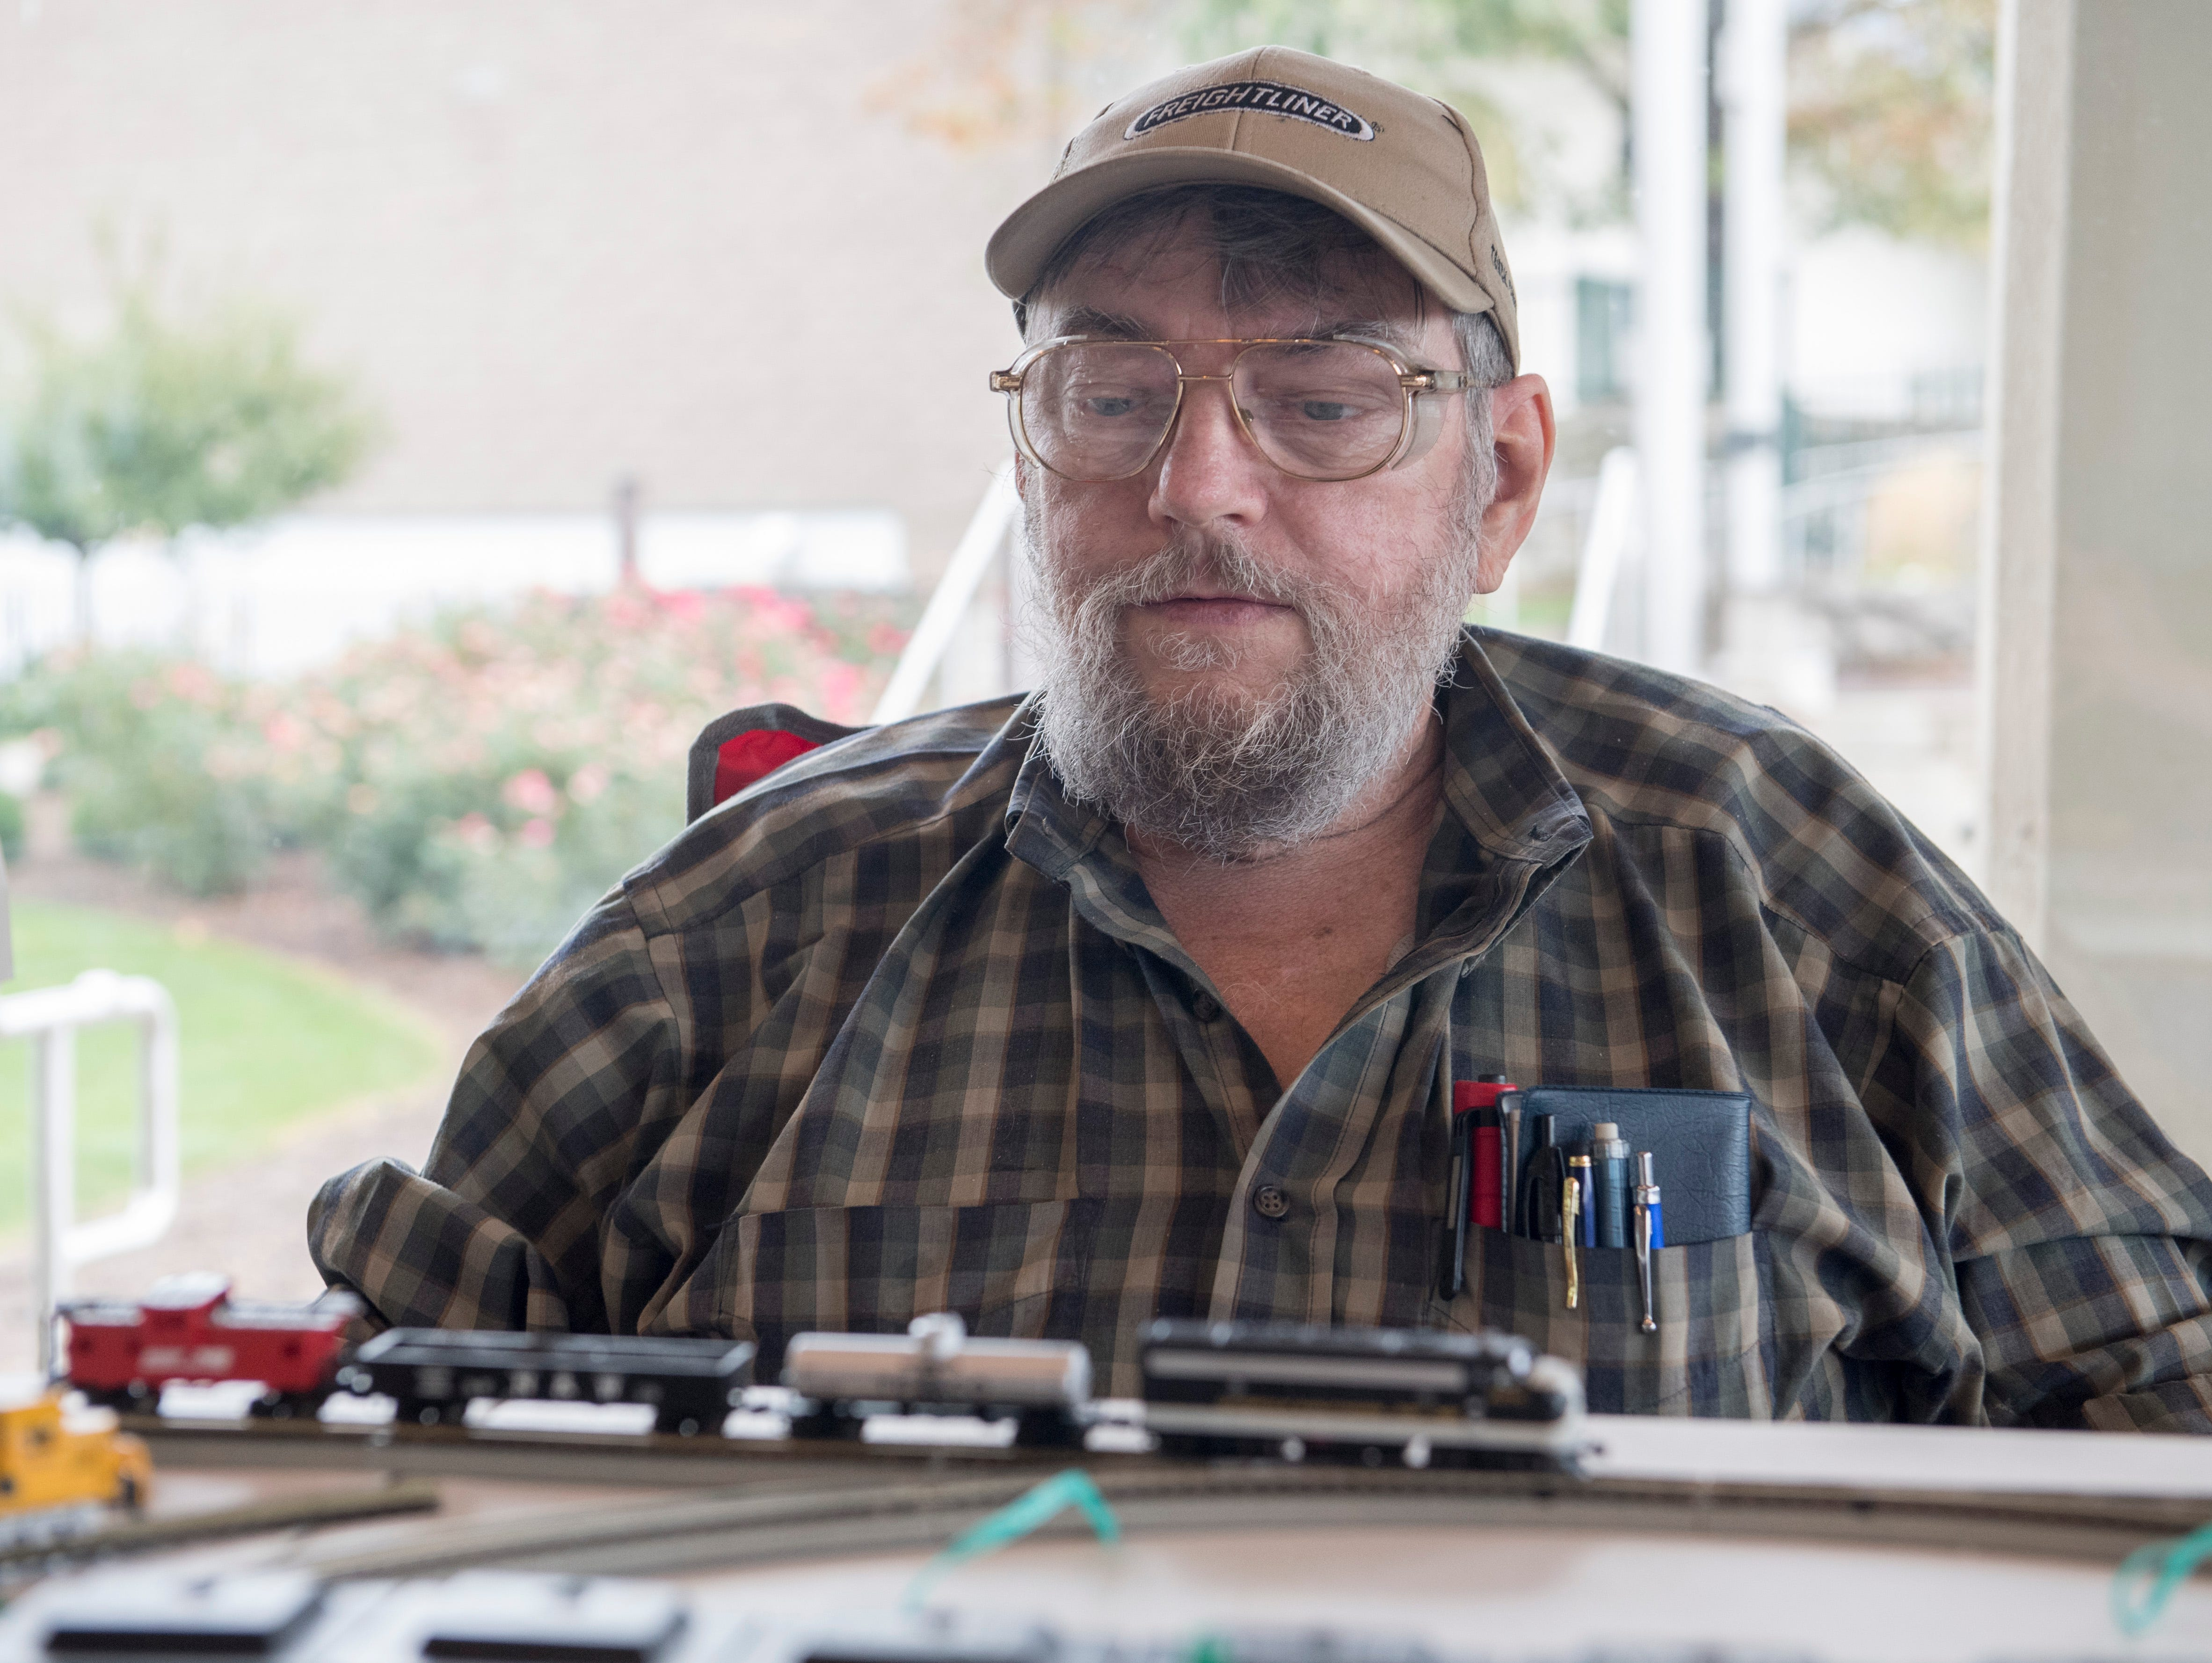 Neal Wayman, a 50 year enthusiast of model trains, adjusts an n gauge train set during the Local Loco Model Railroad Club show at the Evansville Pagoda Sept. 22, 2018.